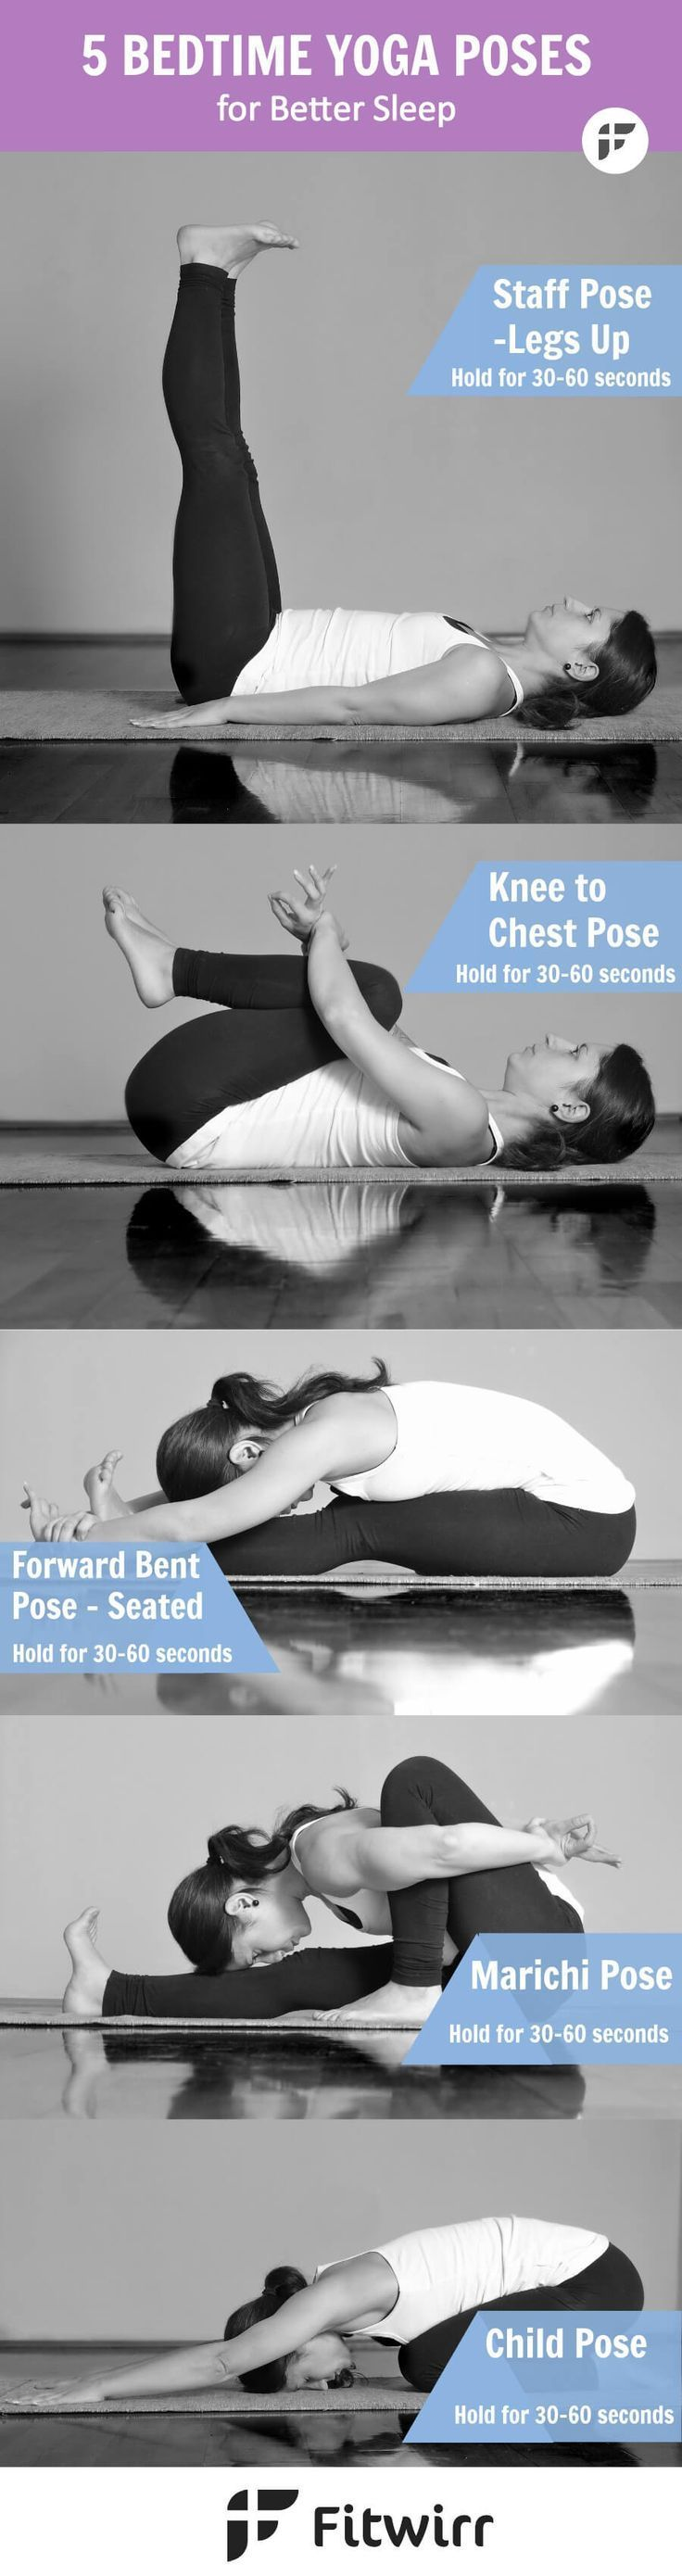 Sometimes what your body and mind need the most is to feel calm and relaxed, specially after a hard day at work. Here are five bedtime Yoga poses that can help you relax, stretch, calm and sleep better. get better sleep, sleeping tips